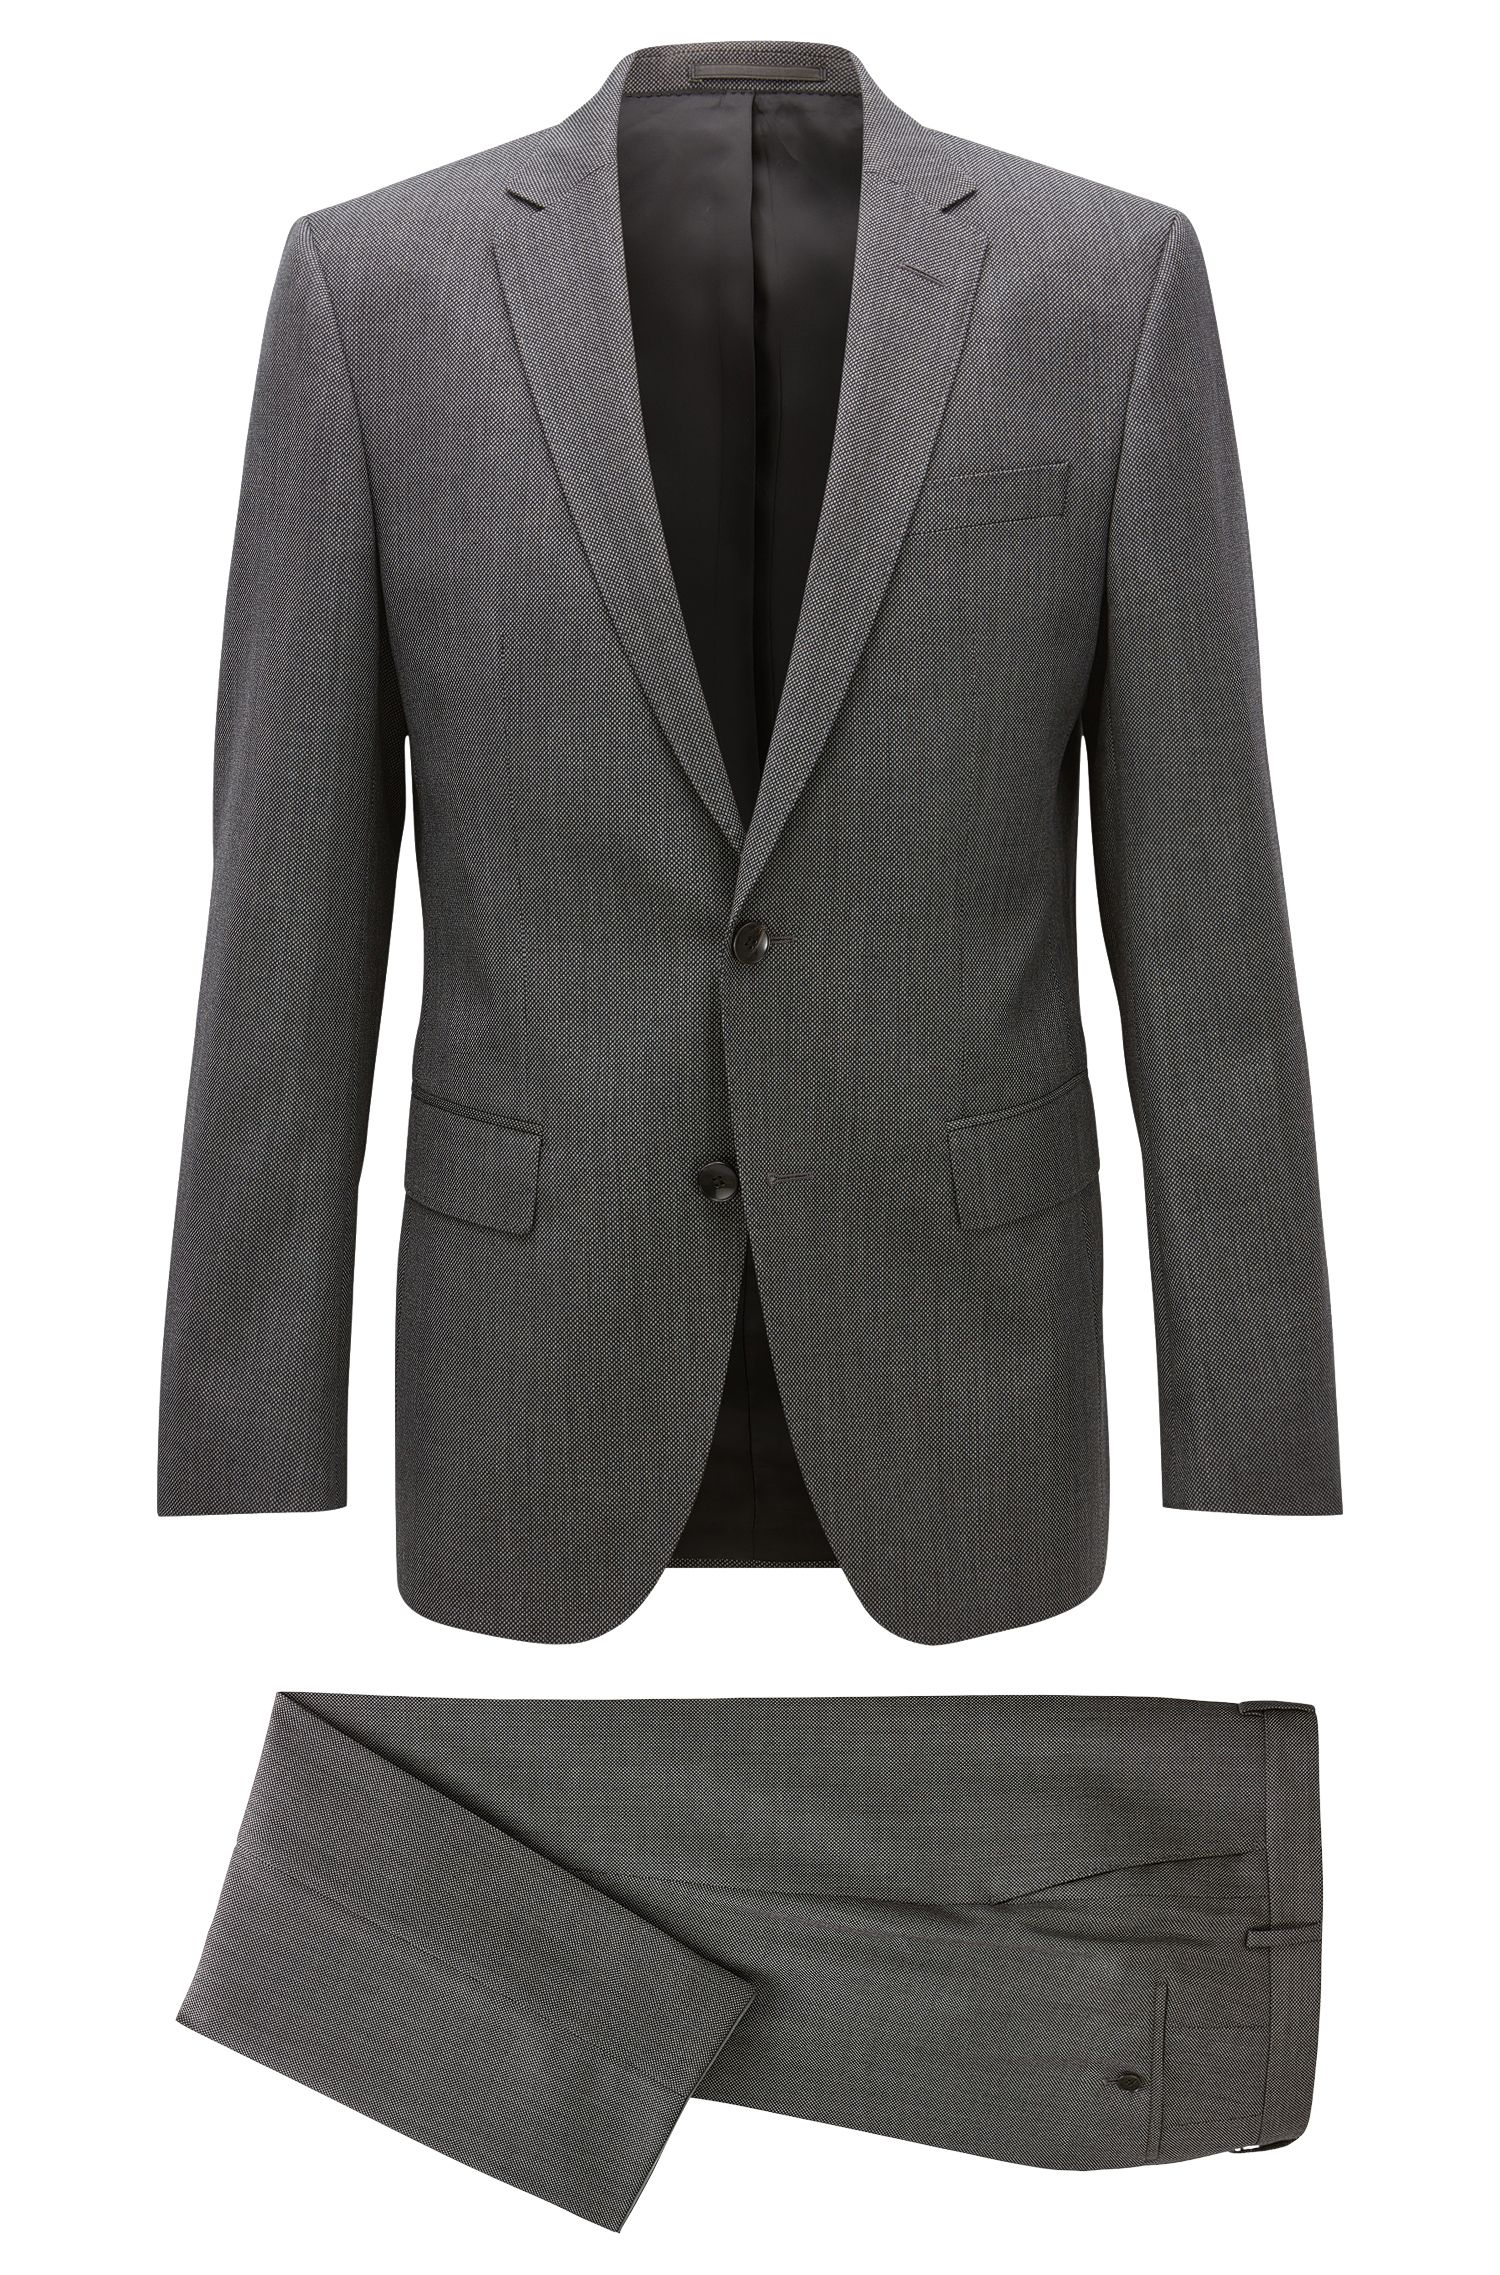 Birdseye Italian Virgin Wool Suit, Slim Fit | Huge/Genius